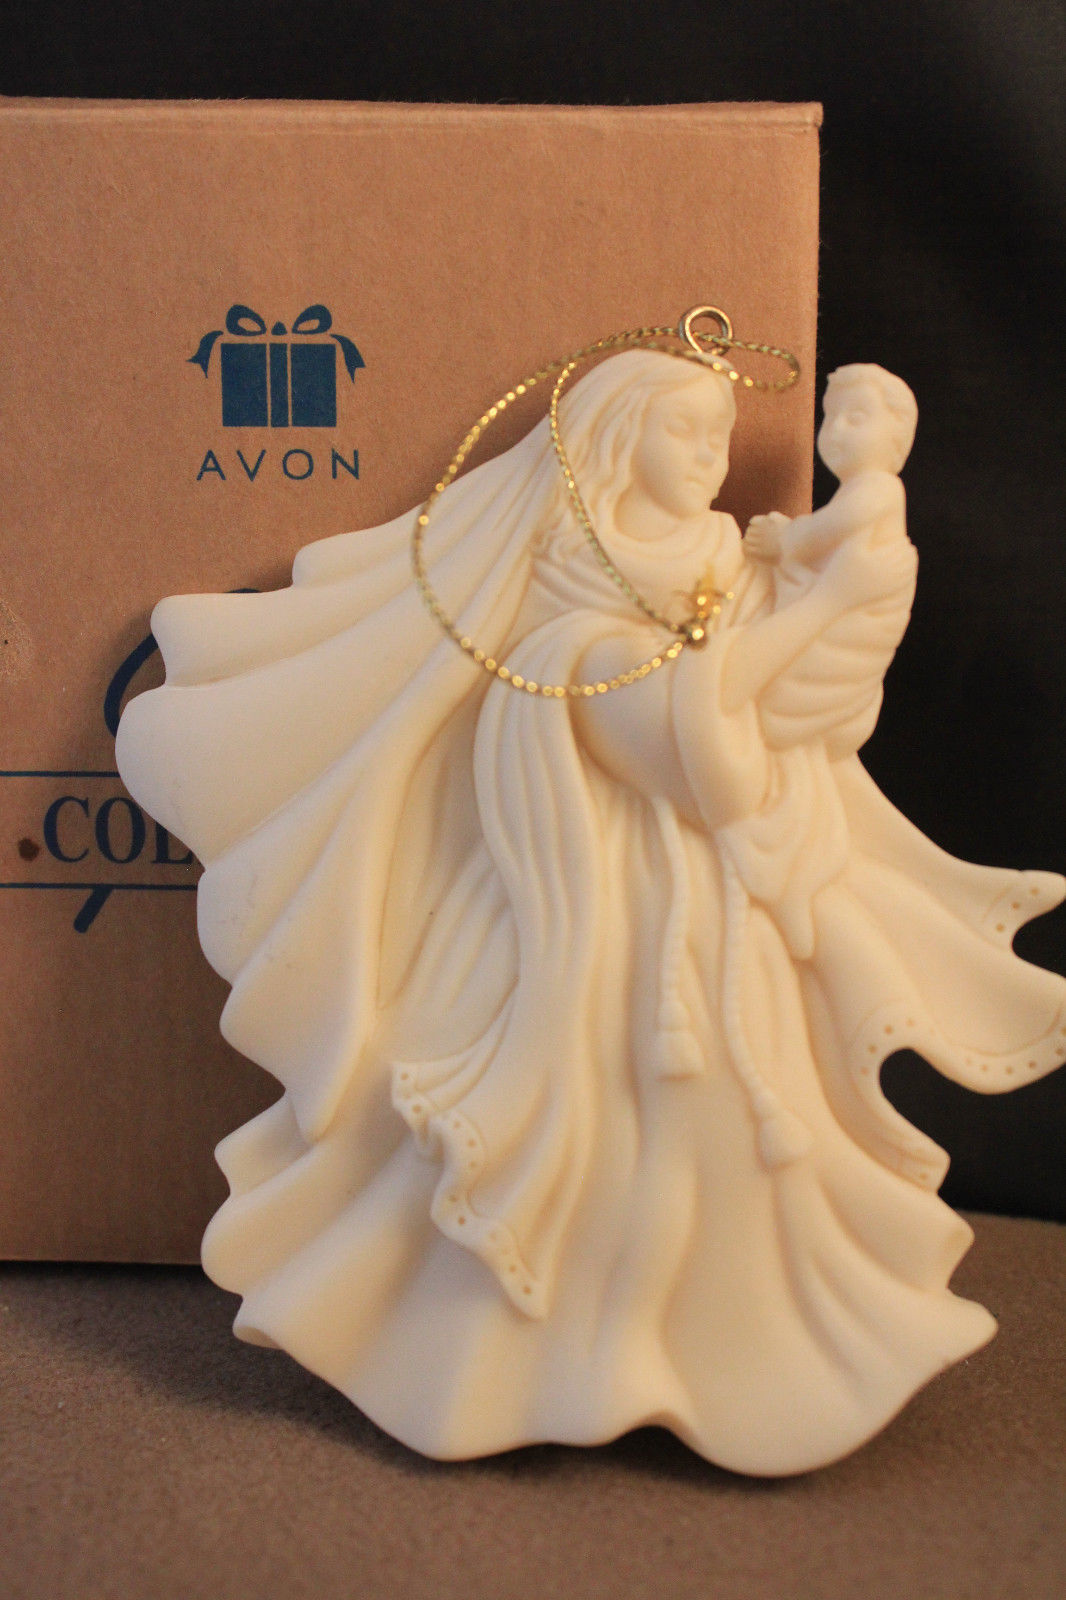 Avon 1997 Gift Collection Mary and Baby Cast Resin Christmas Ornament